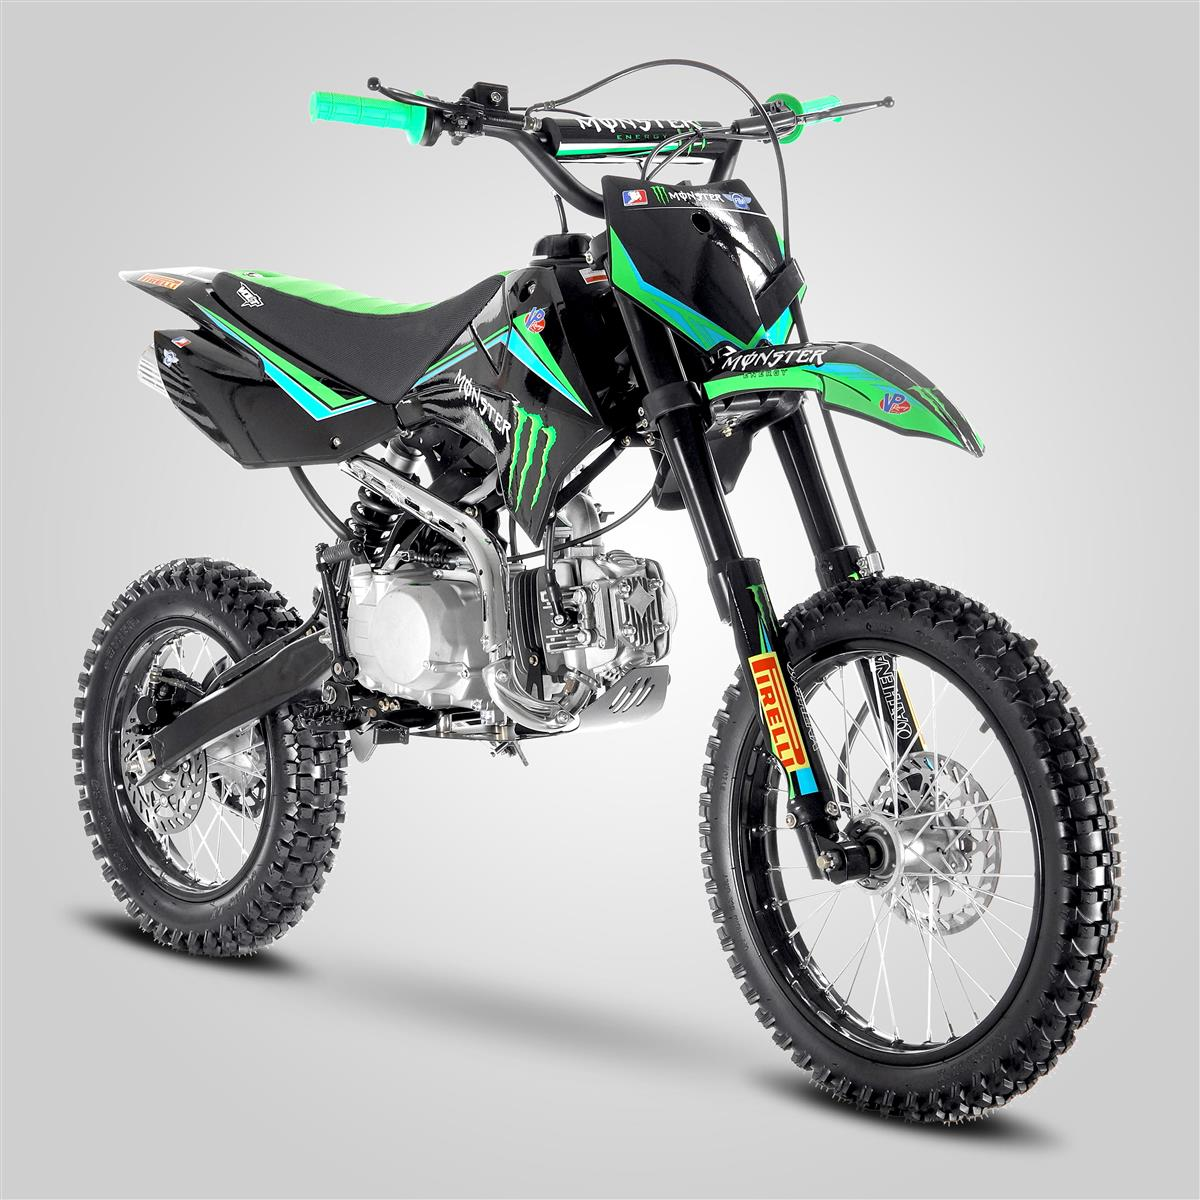 pit bike dirt bike sx 140cc yx 2017 smallmx dirt bike pit bike quads minimoto. Black Bedroom Furniture Sets. Home Design Ideas